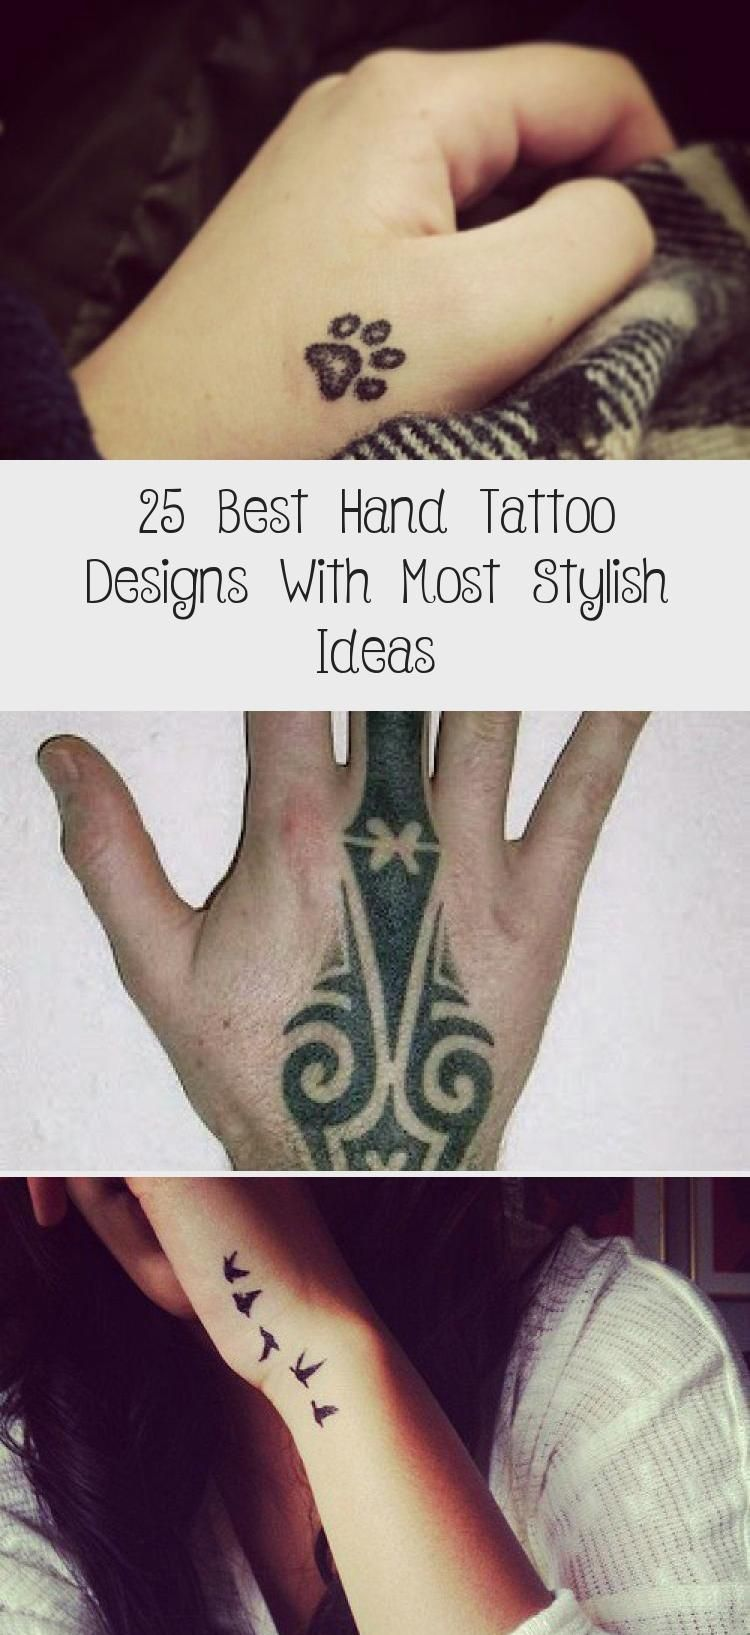 25 Best Hand Tattoo Designs With Most Stylish Ideas Designs Hand Ideas Stylish Tattoo In 2020 Hand Tattoos Tattoo Designs Tattoo Designs For Girls